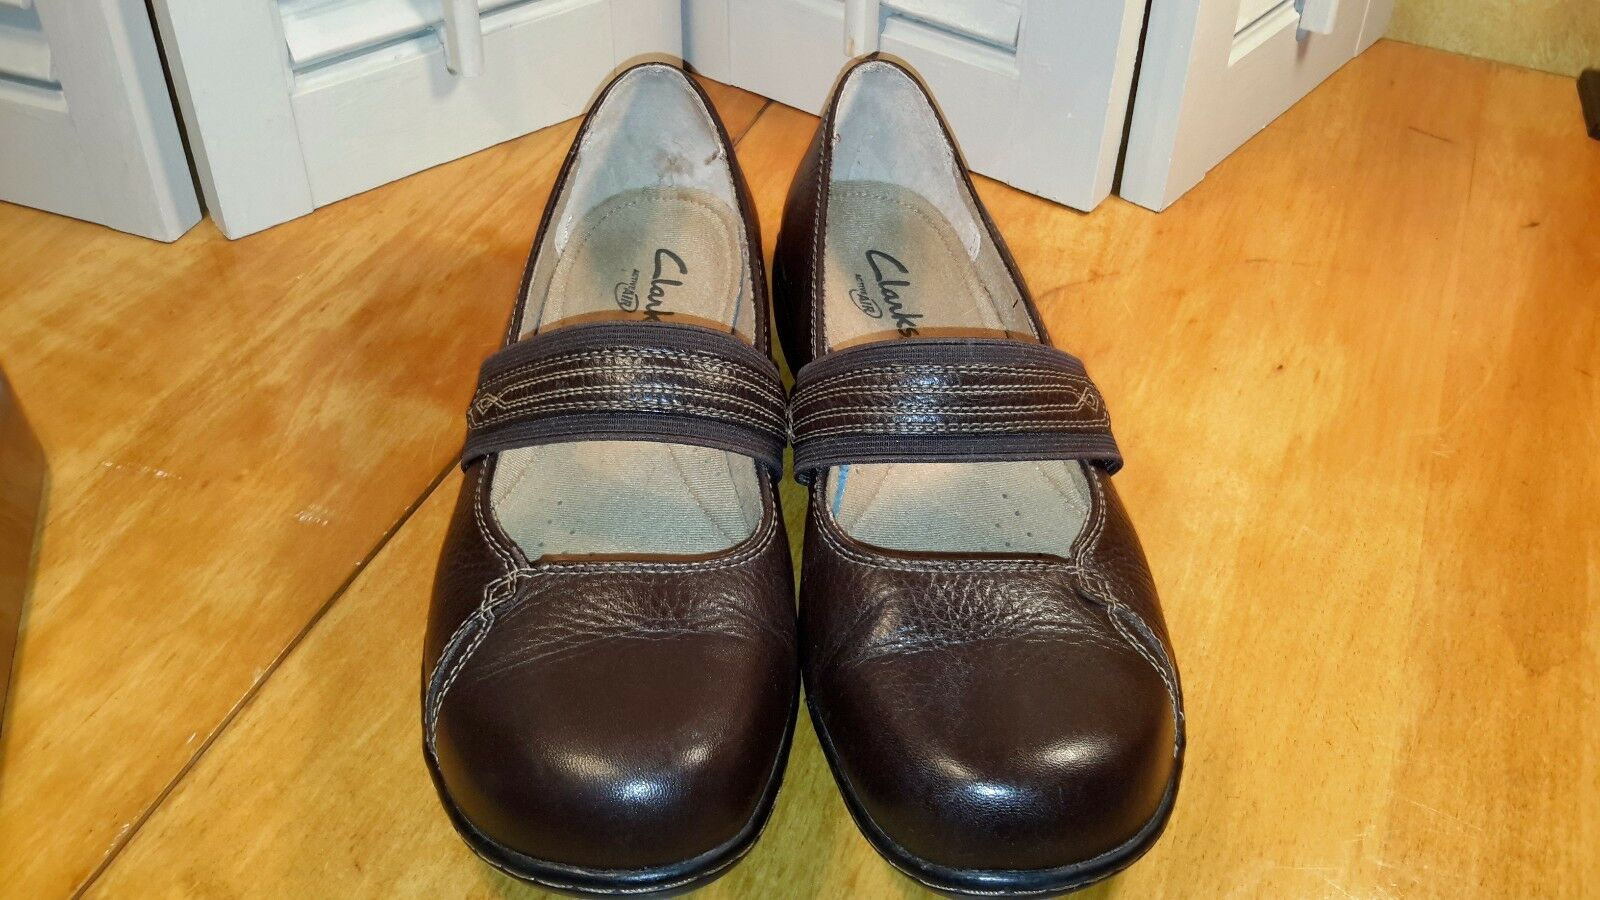 Clarks women's active air  casual flat loafer brown leather Mary Janes size 8.5